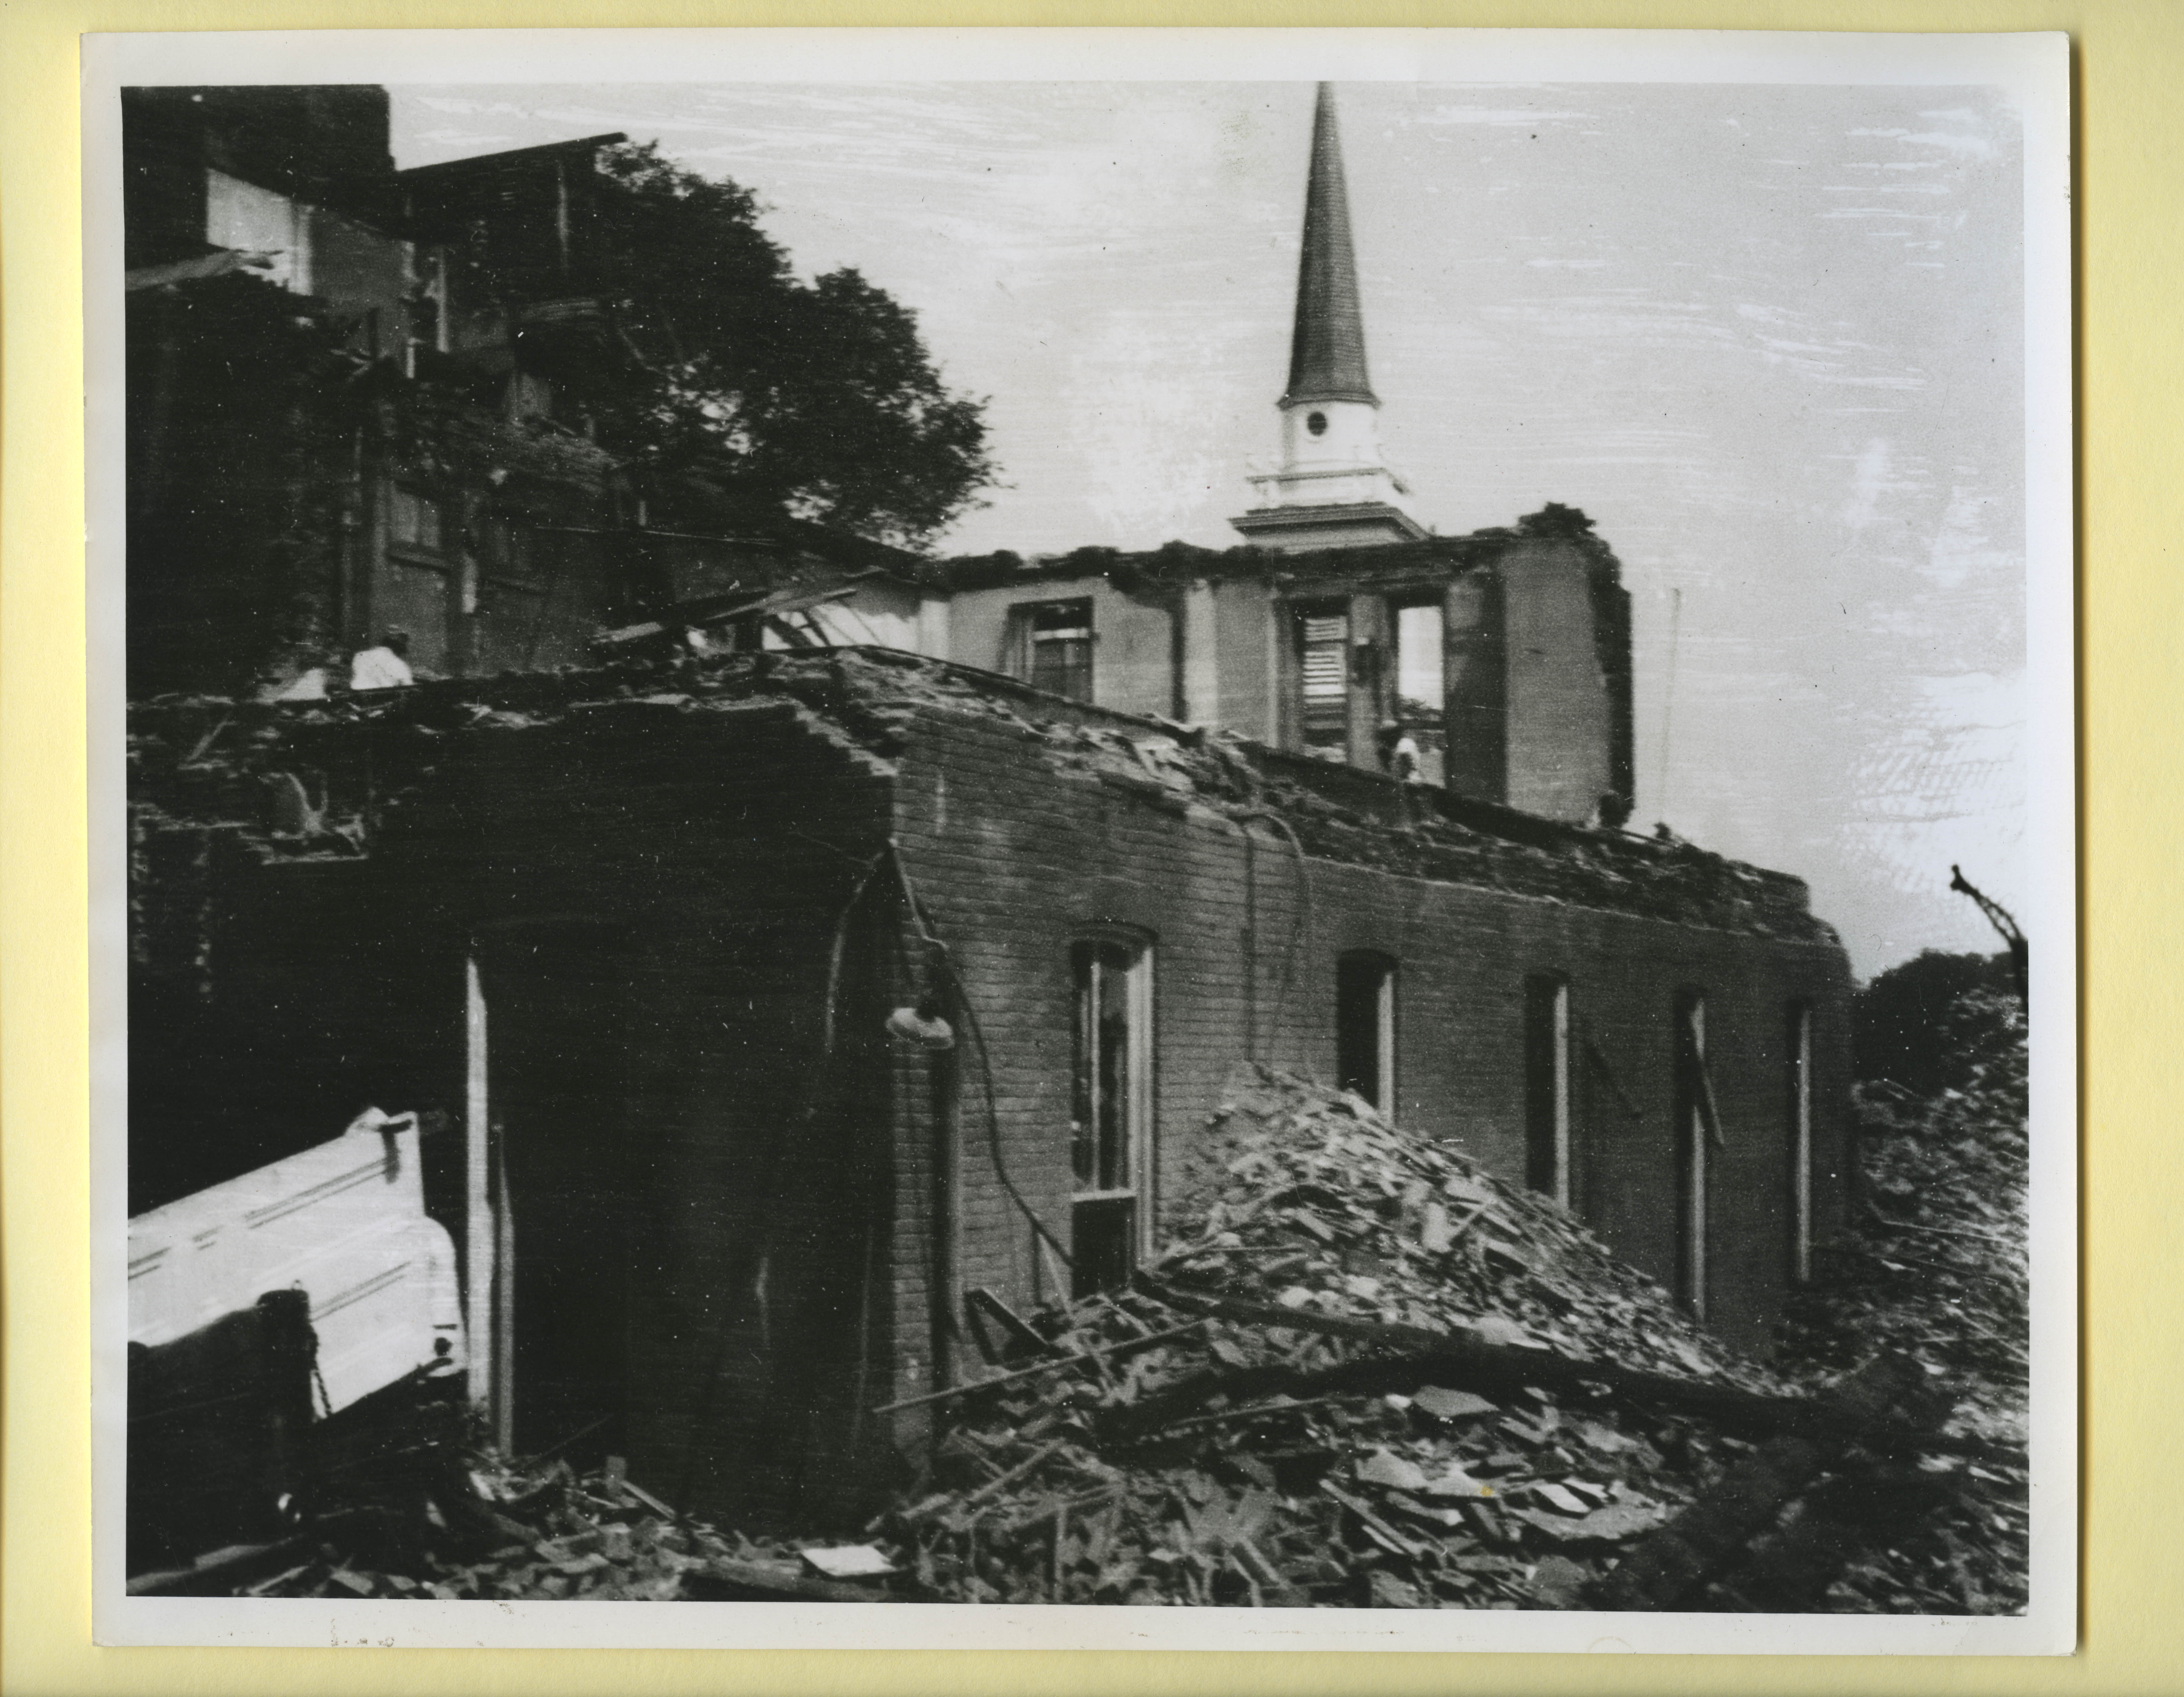 View of Berry Hall I and Dilworth Hall I during demolition with Chapel steeple visible in background